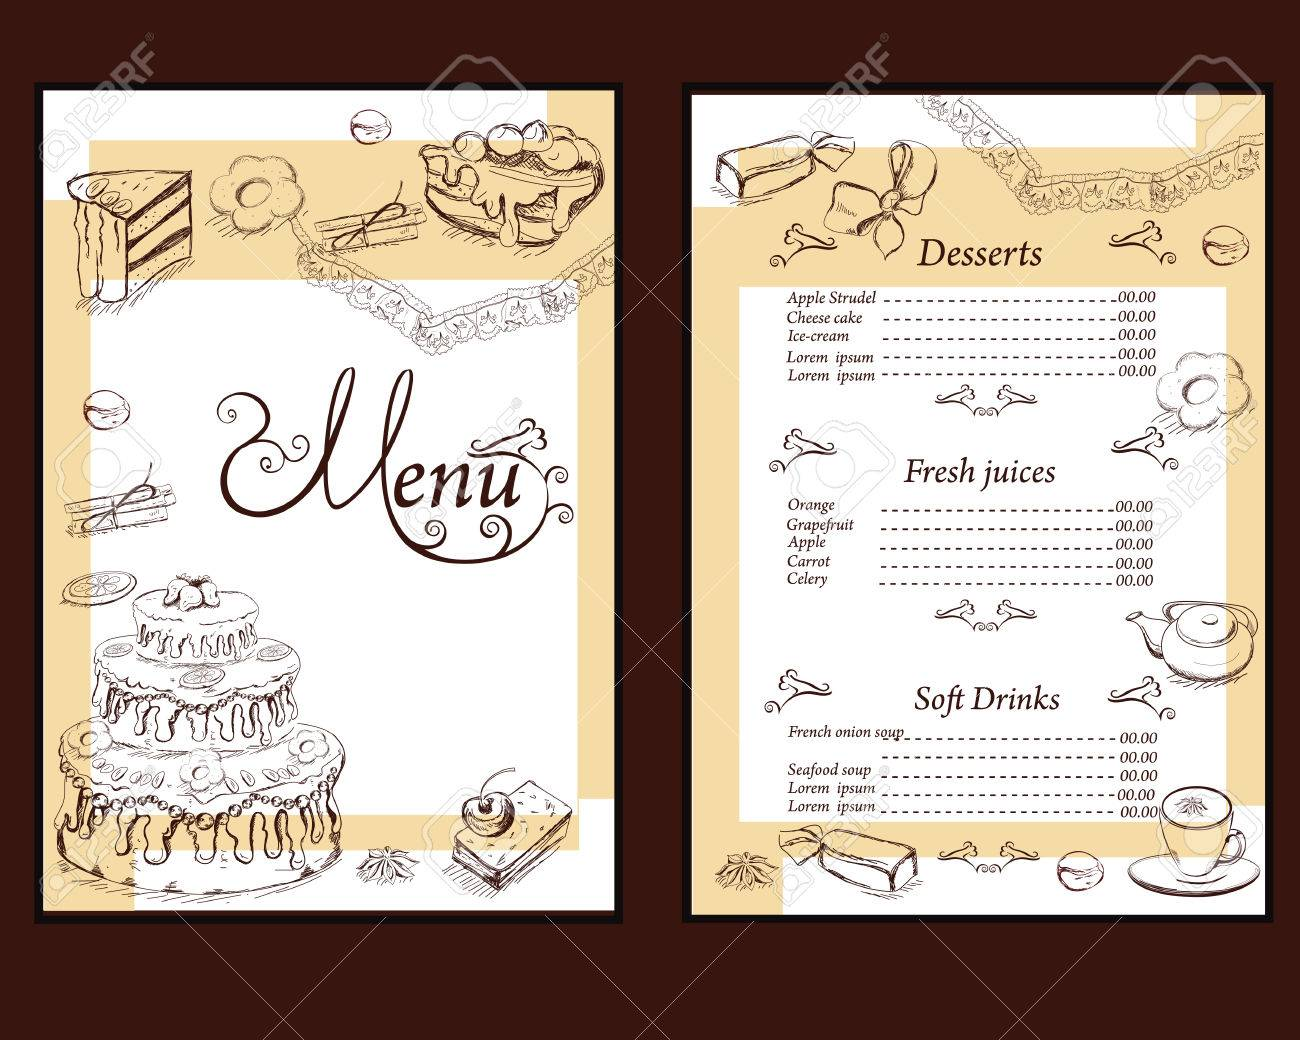 Background With Sweets And Cakes For Menu Design Hand Drawn